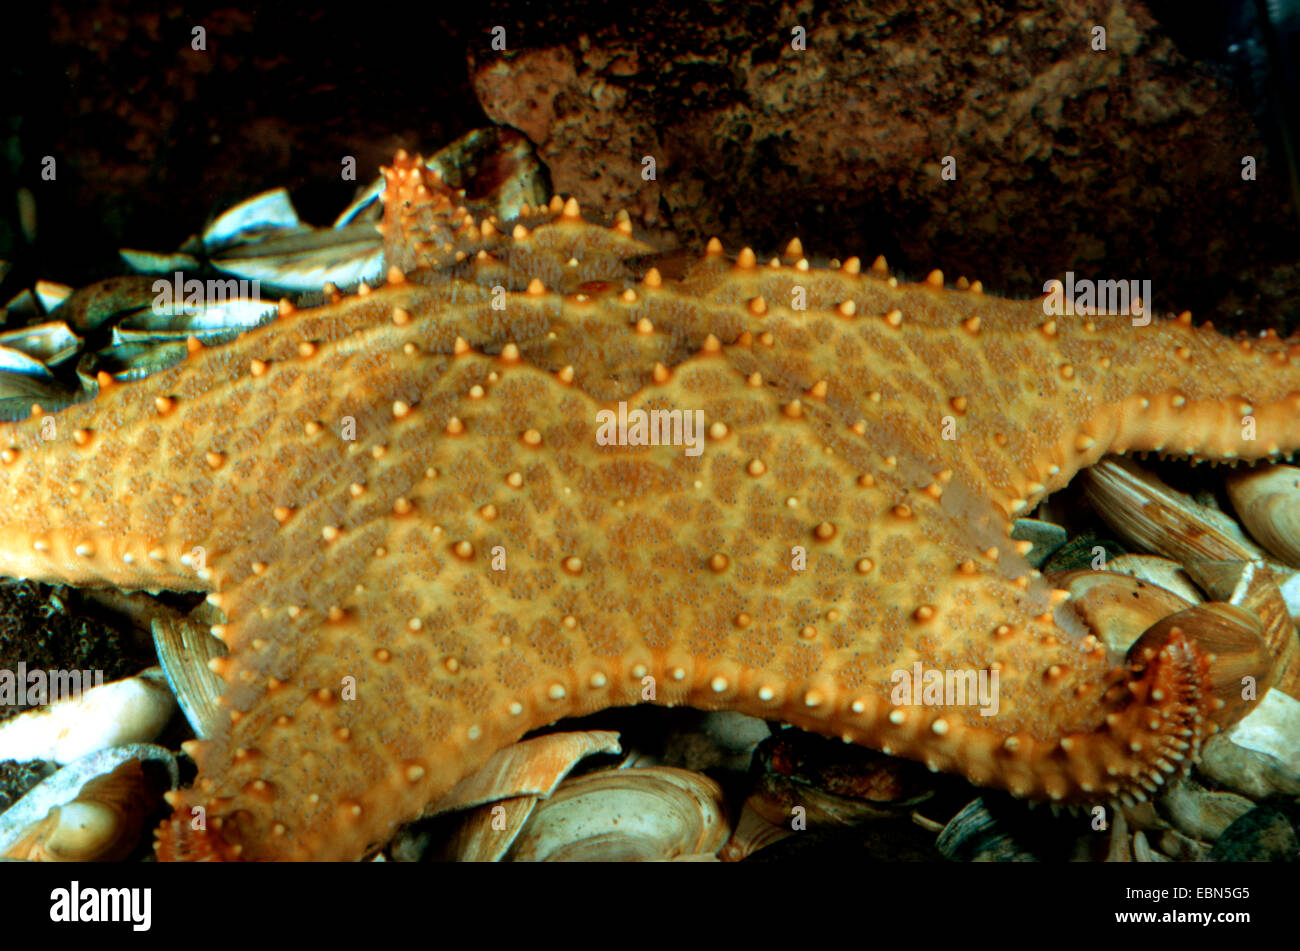 Pentaceraster mamillatus (Pentaceraster mamillatus), sitting on the sea bed on the remains of eaten sea shells - Stock Image